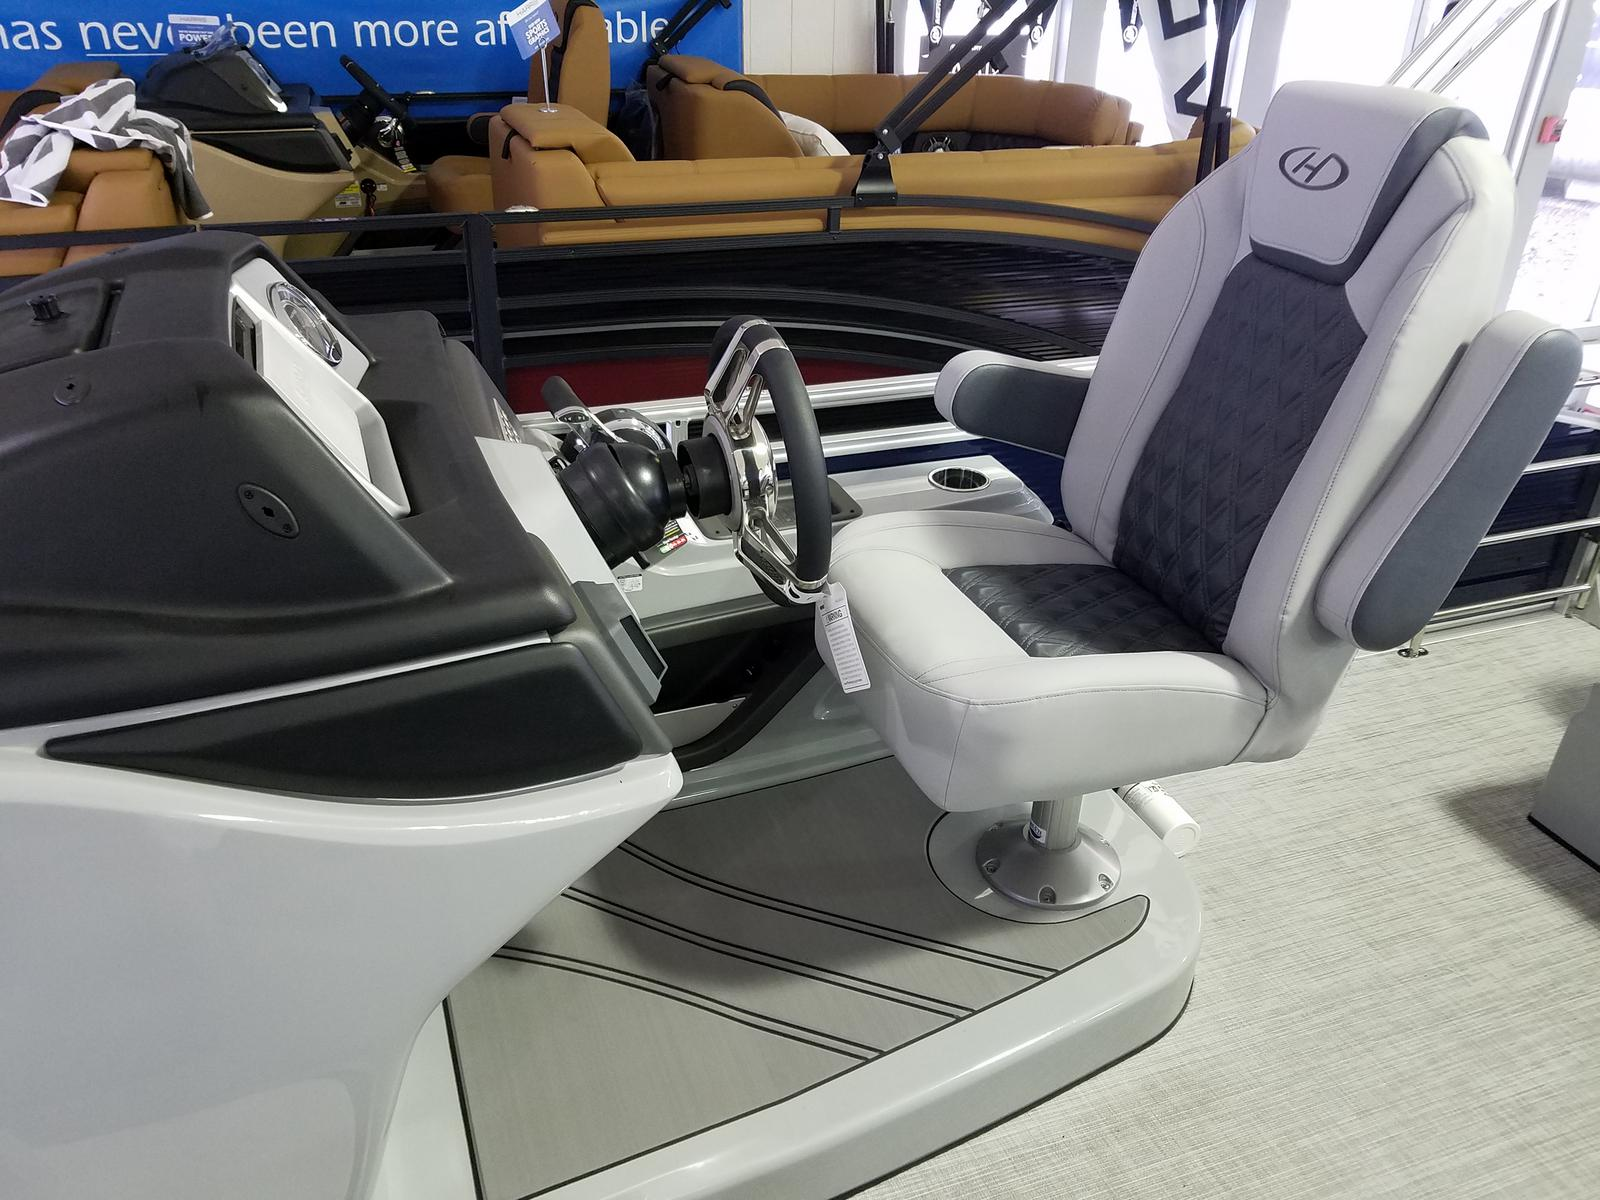 2021 Harris boat for sale, model of the boat is Solstice 230 & Image # 5 of 16